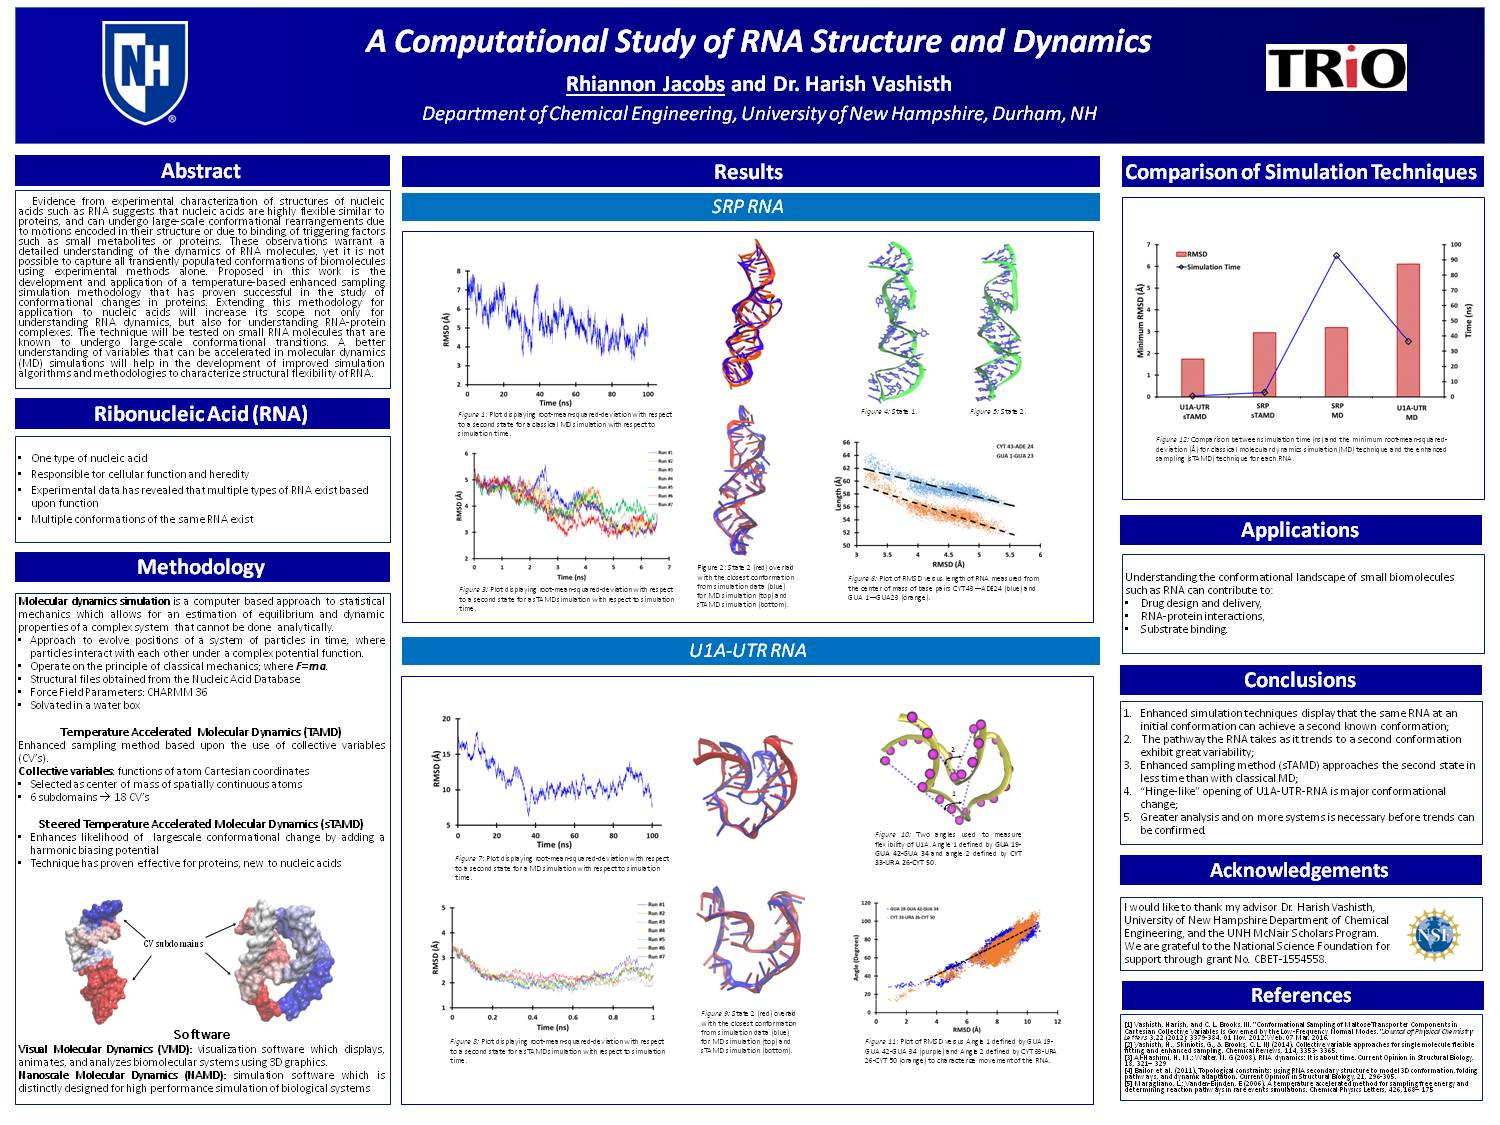 A Computational Study Of Rna Structure And Dynamics by rlk58